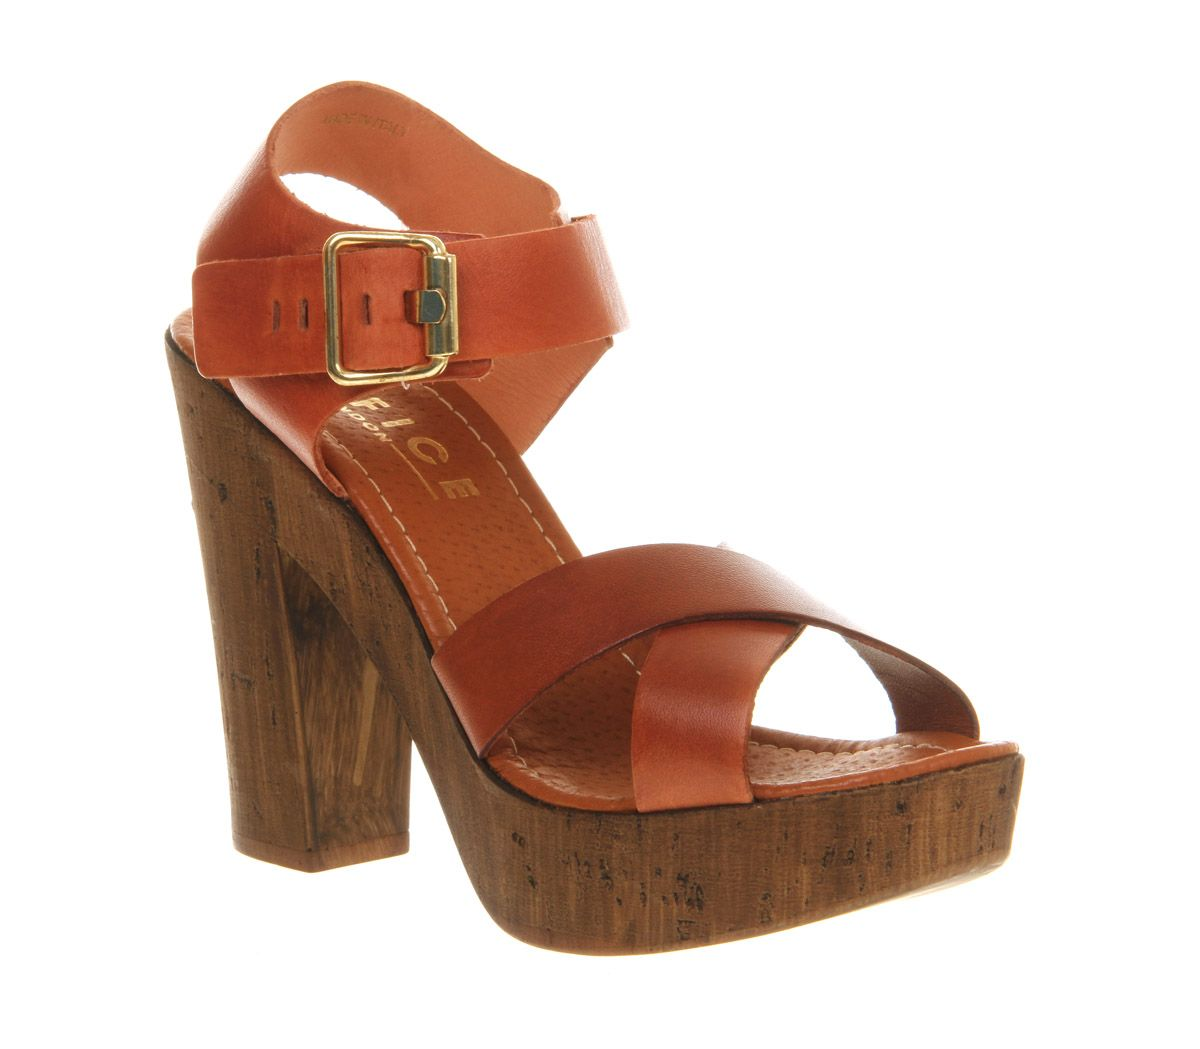 Jamaica wood leather open toe platform sandals